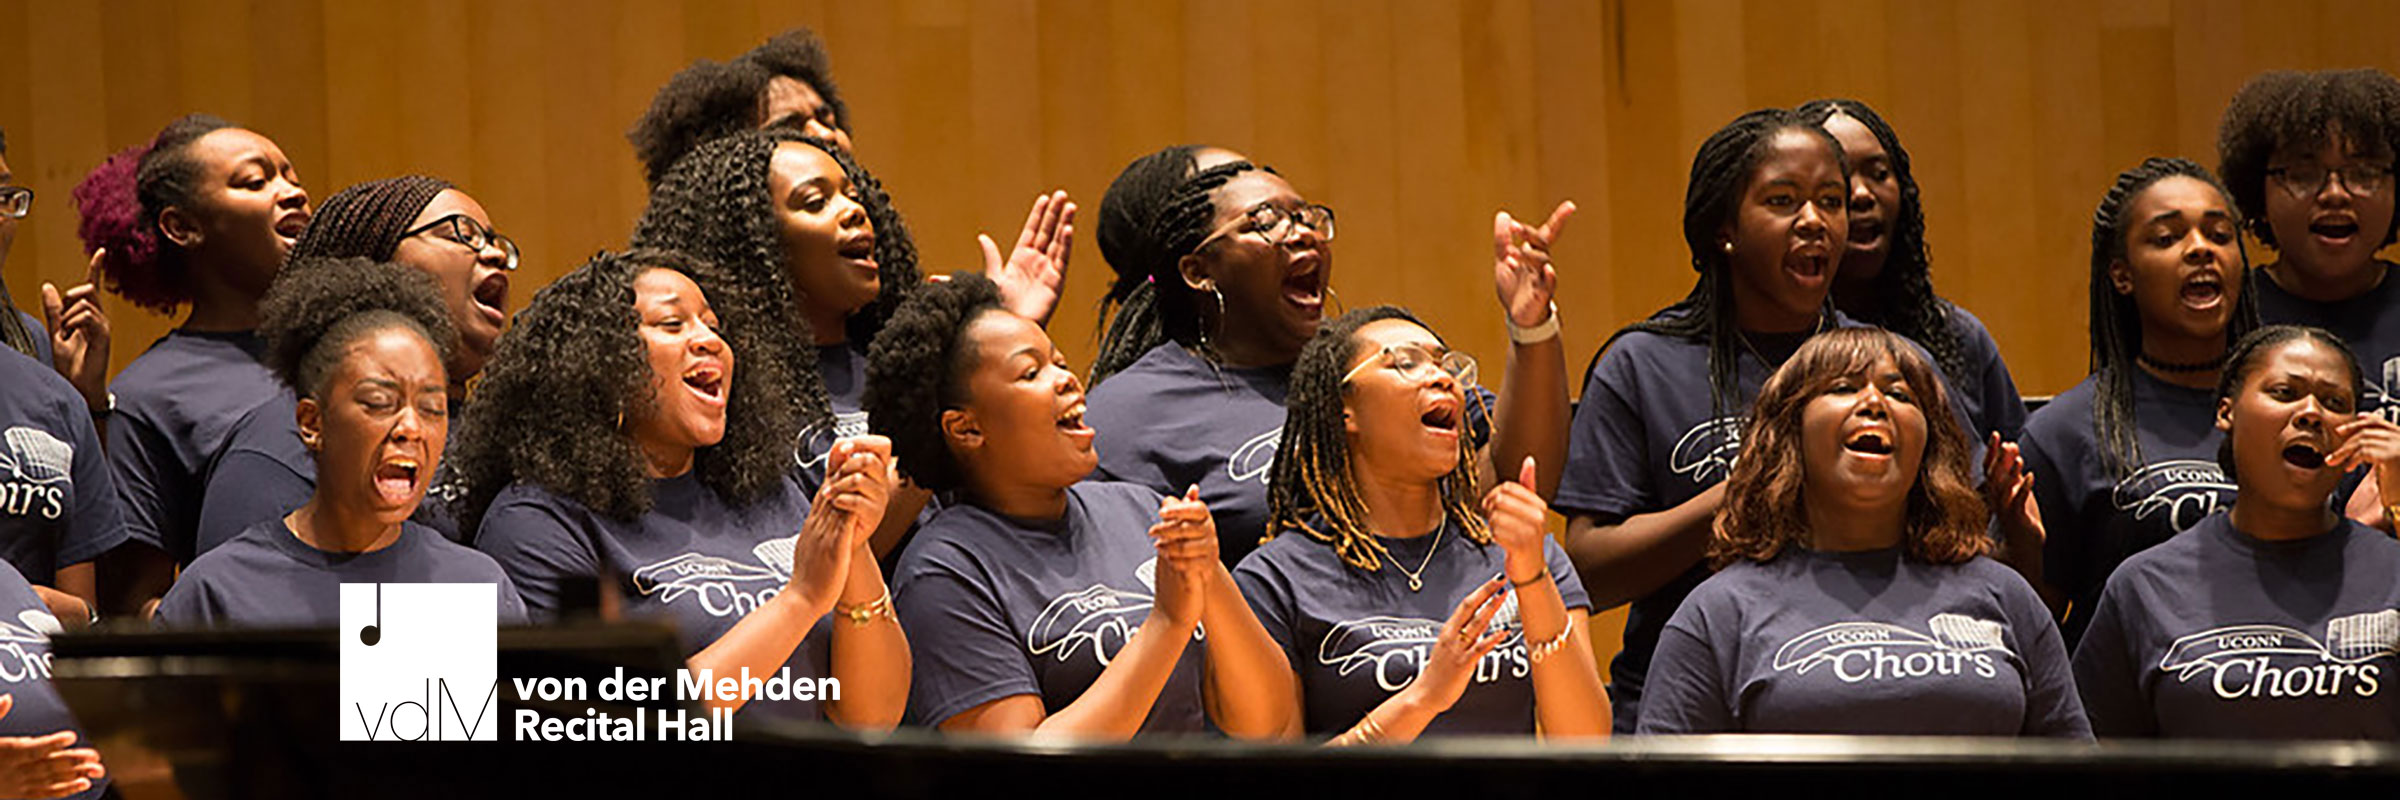 vdm uconn choirs